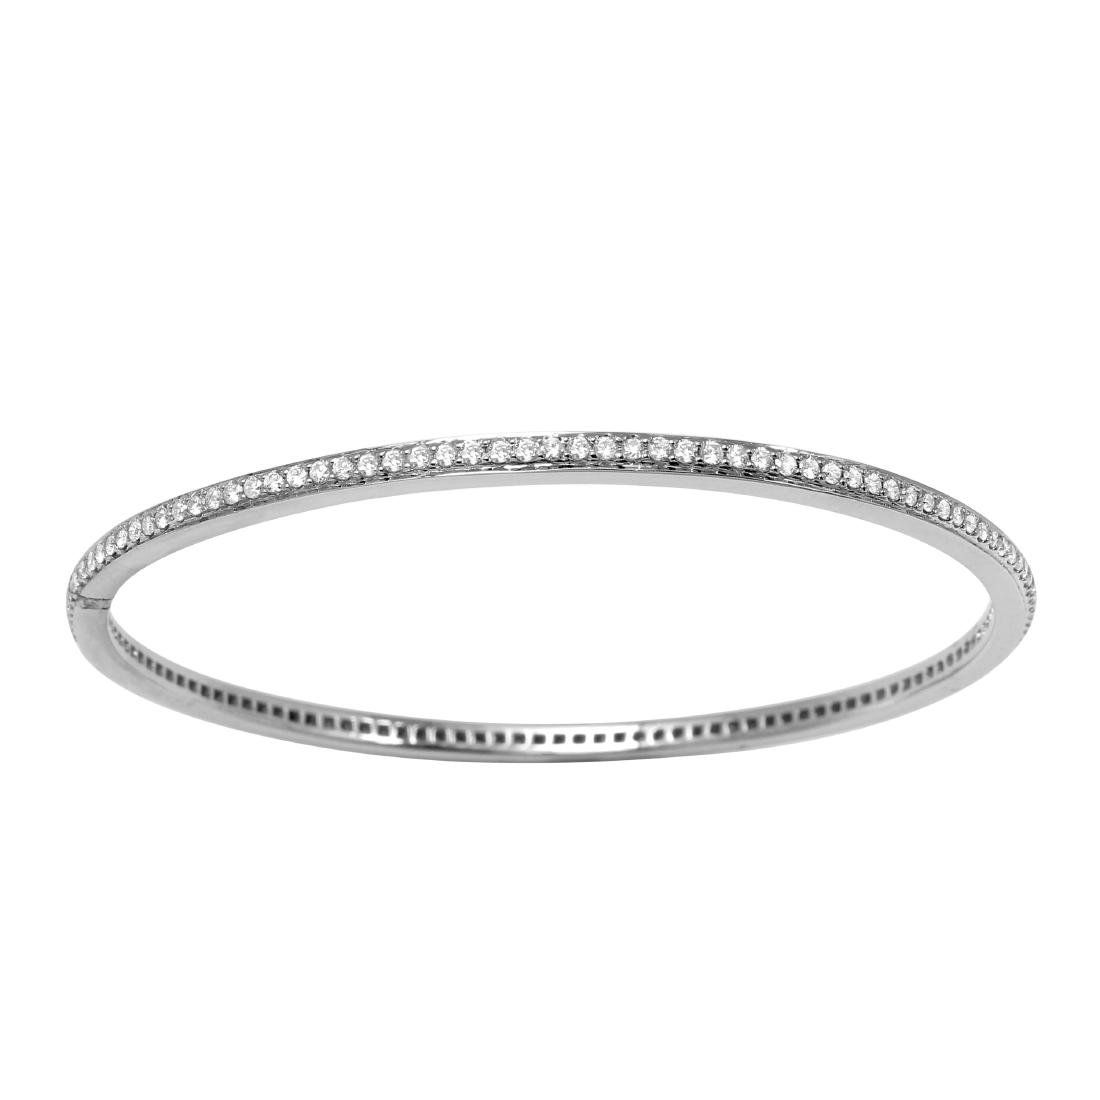 14KT White Gold Diamond Bangle Bracelet - 3